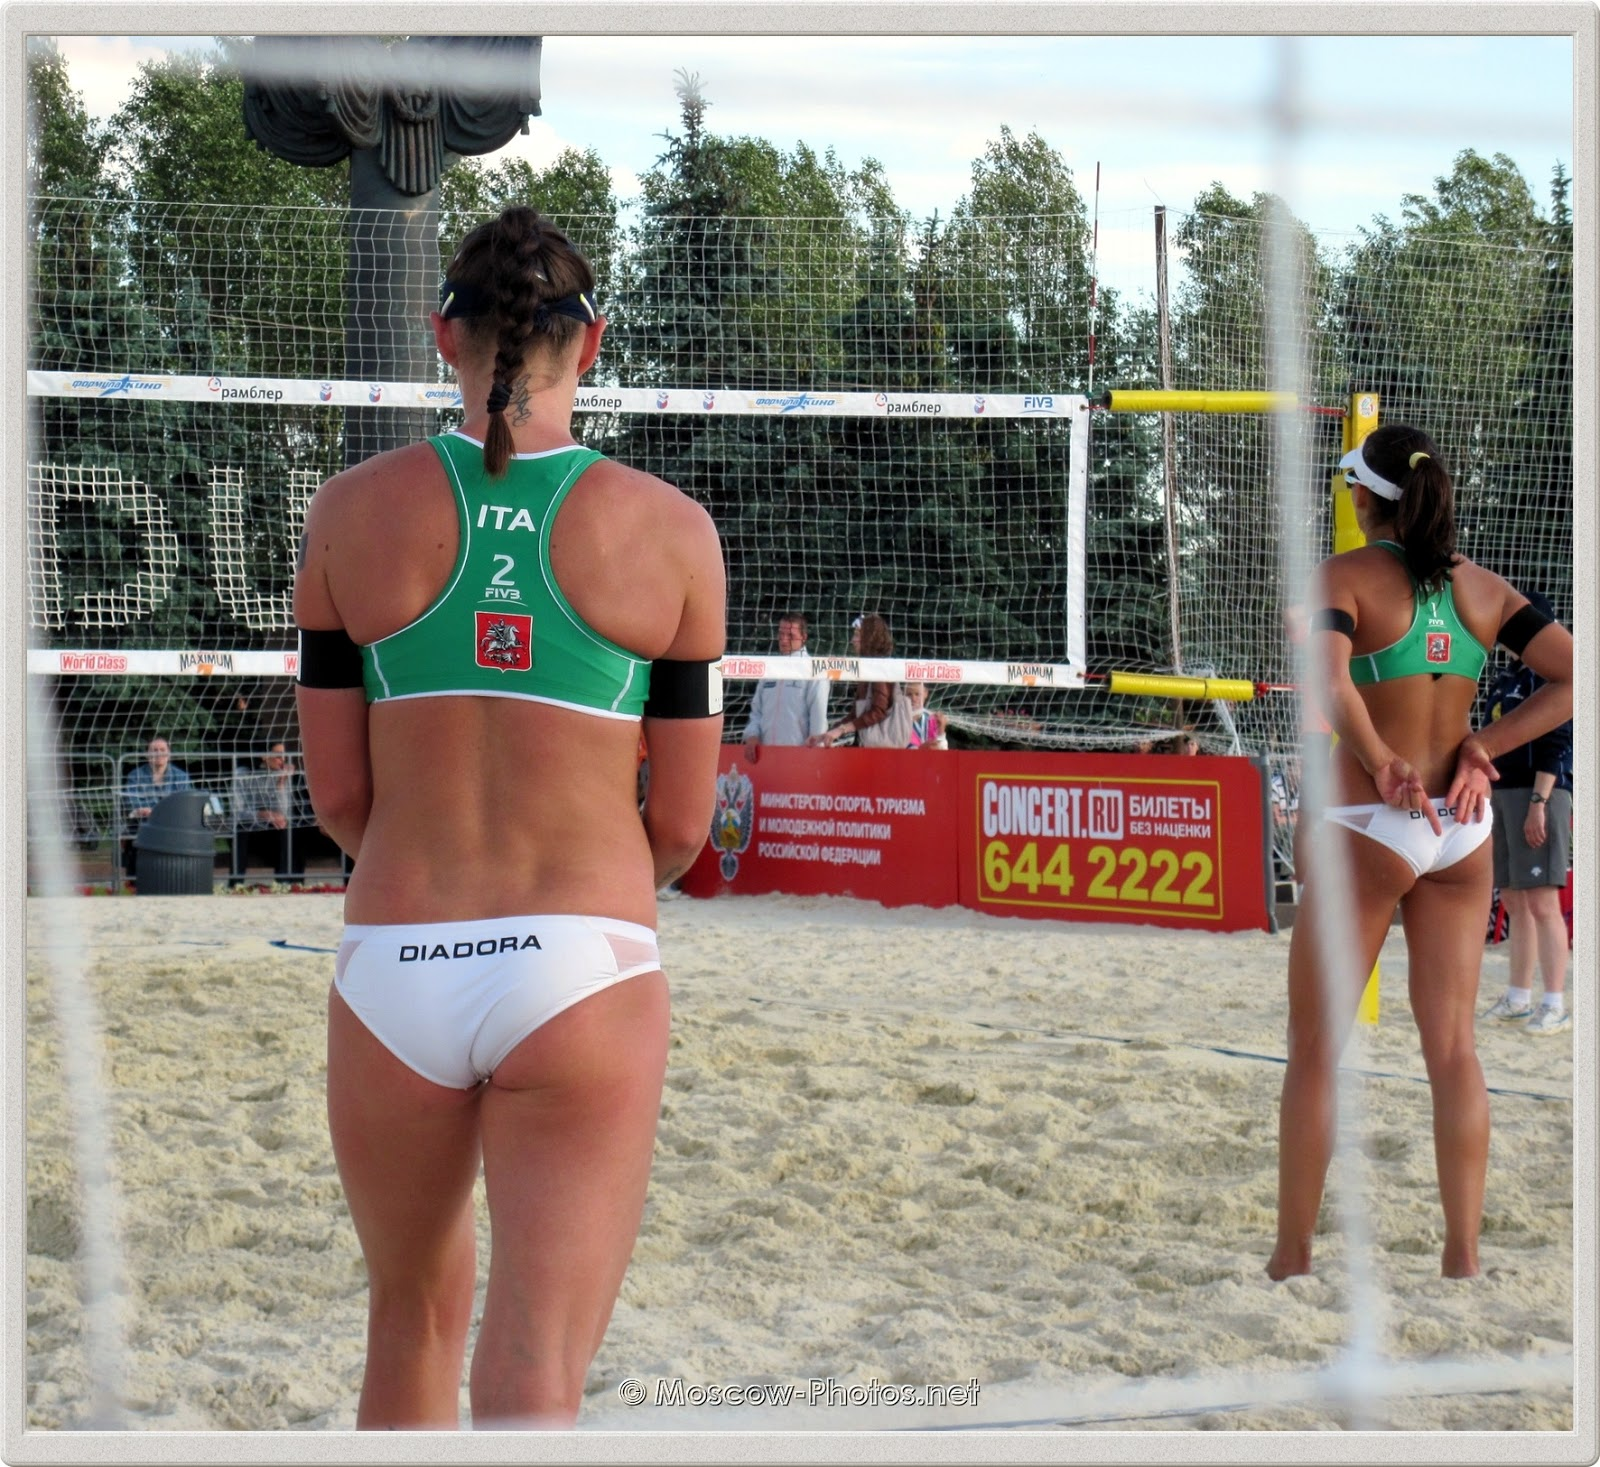 Marta Menegatti (right) shows to Greta Cicolari (left) the upcoming combination